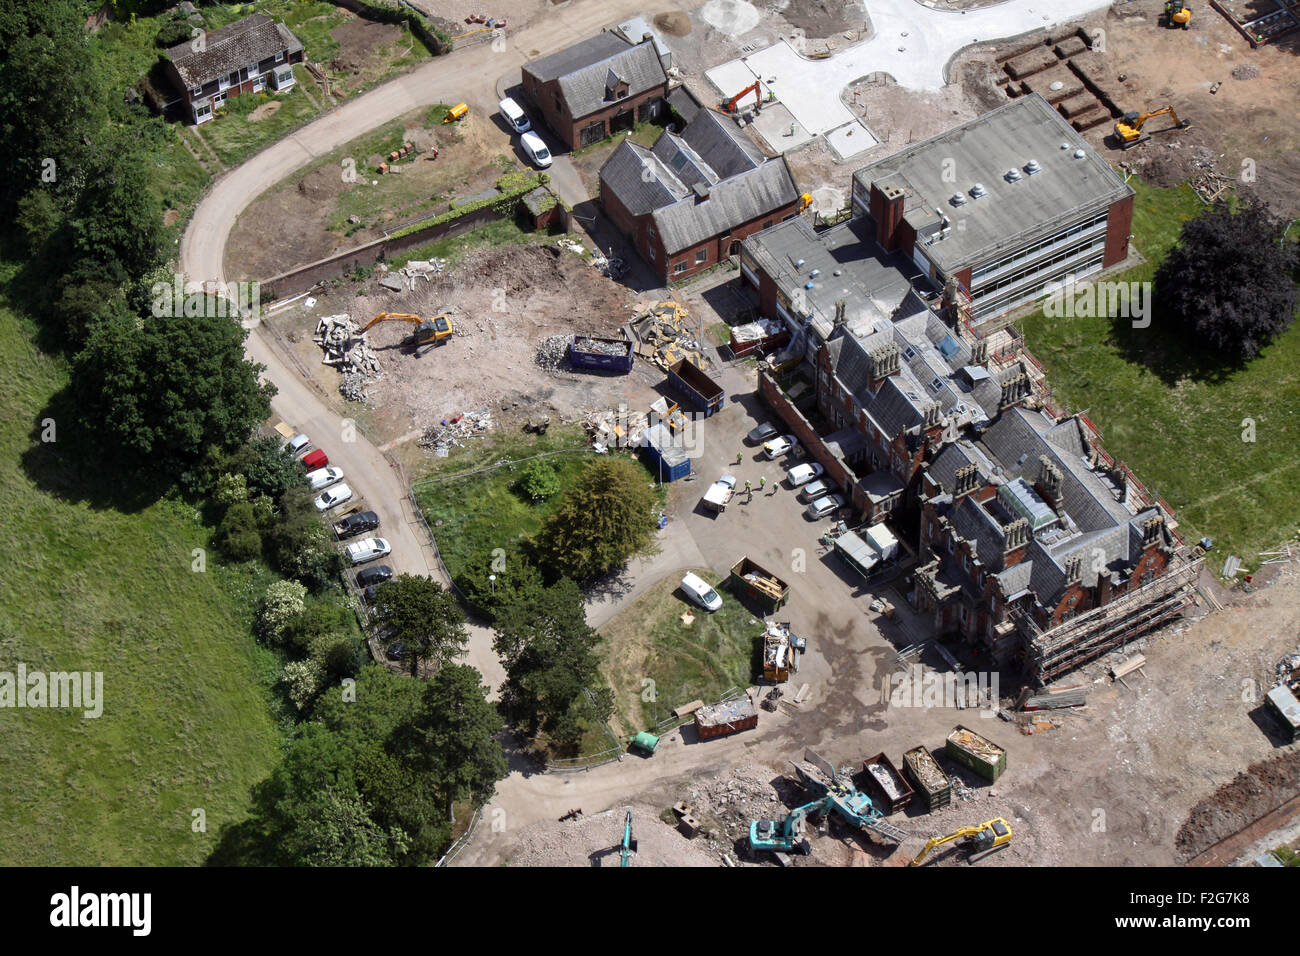 aerial view of a large house renovation building site in northern England, UK - Stock Image